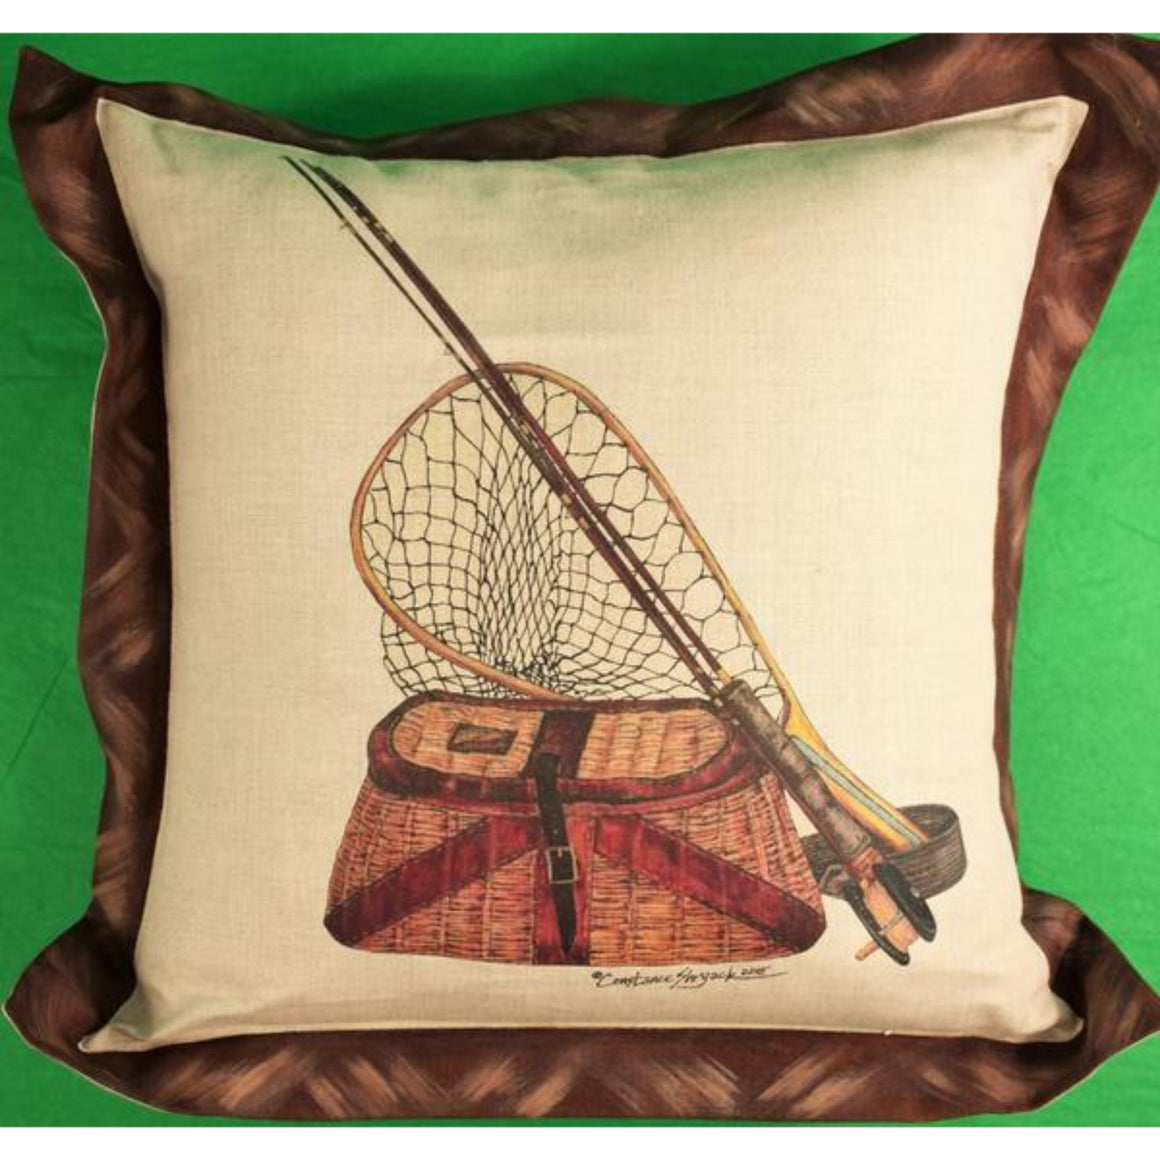 'Orvis Fly-Fishing: Creel/ Fly Rod & Net Hand-Painted 2015 Pillow'